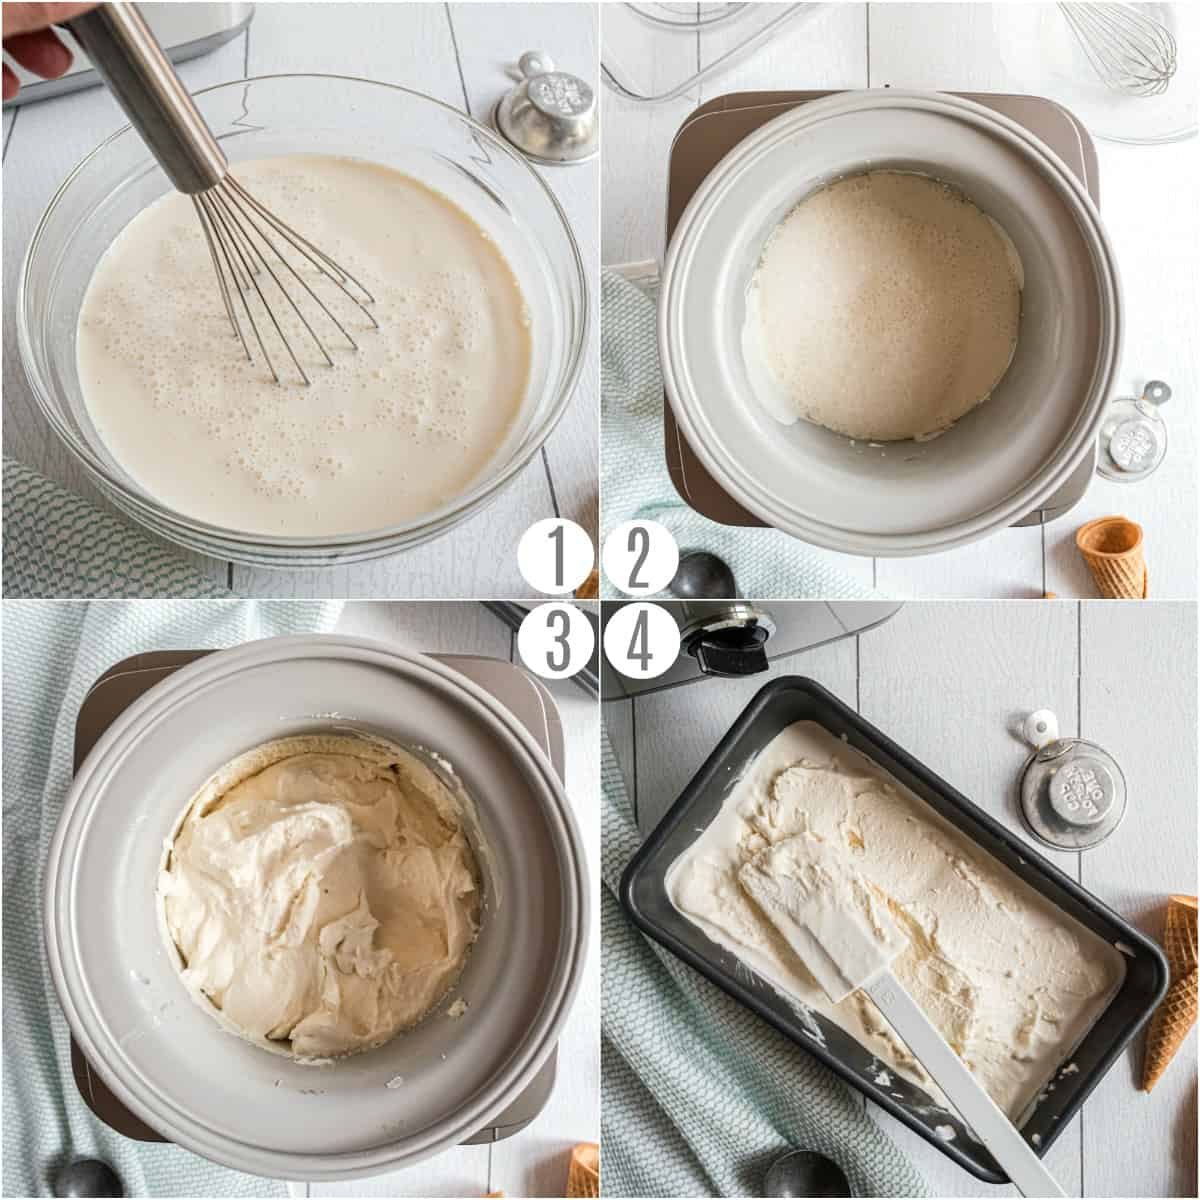 Step by step photos showing how to make homemade ice cream.